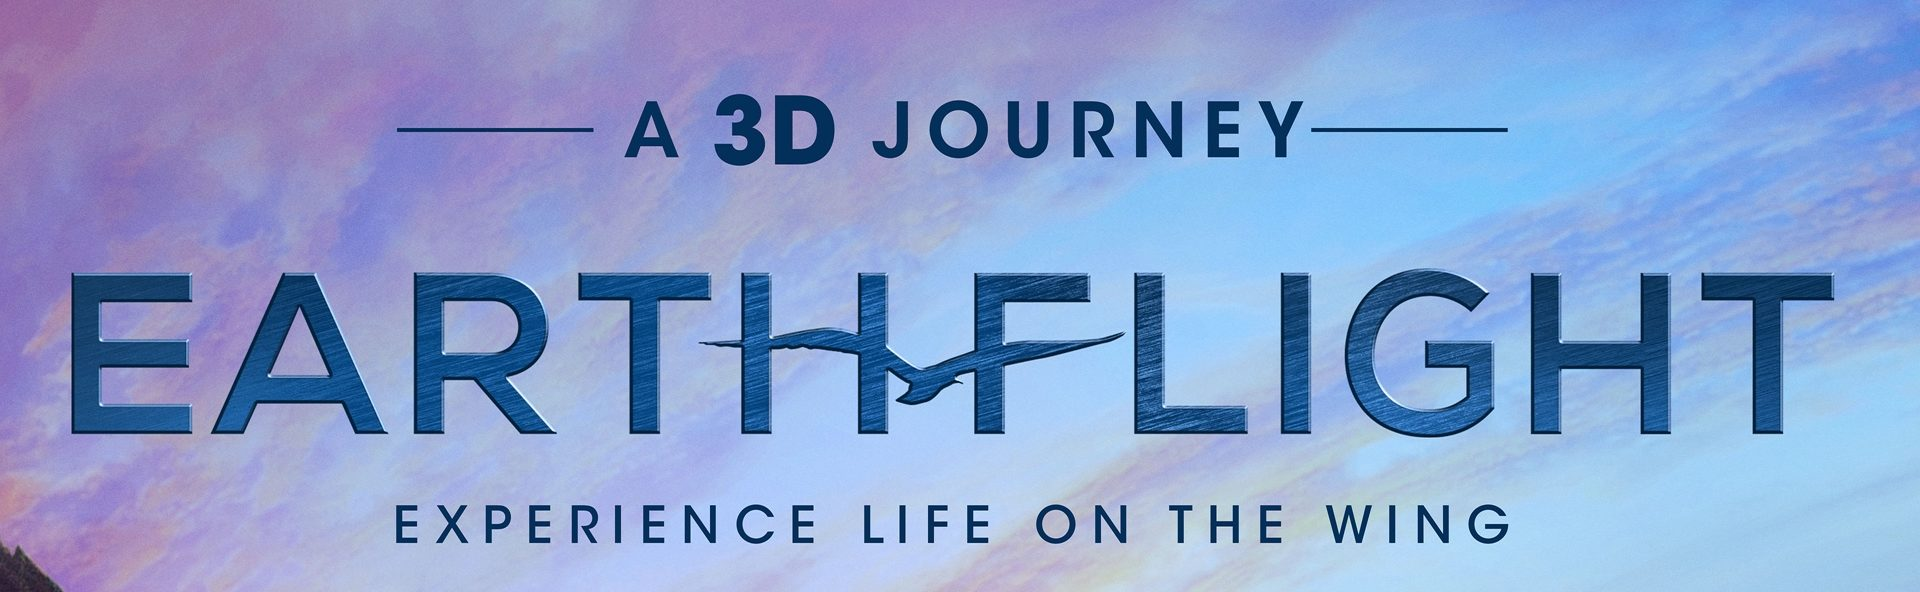 Earthflight 3D – Screenings list